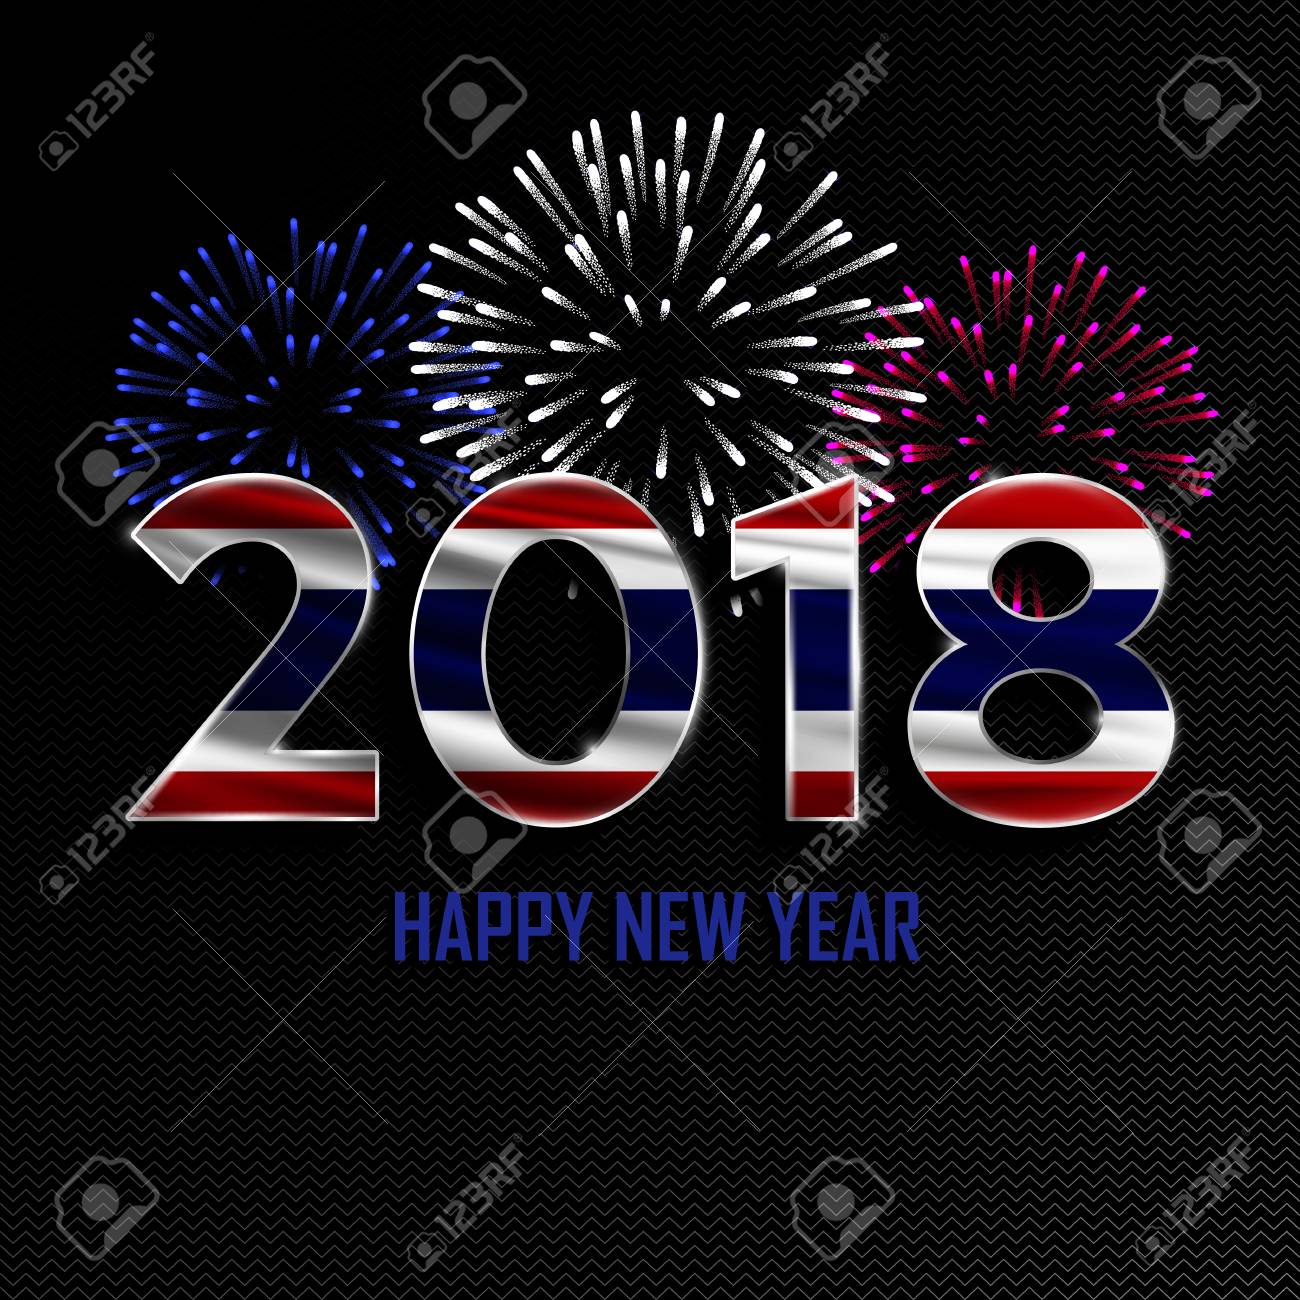 happy new year and merry christmas 2018 new year background with national flag of thailand